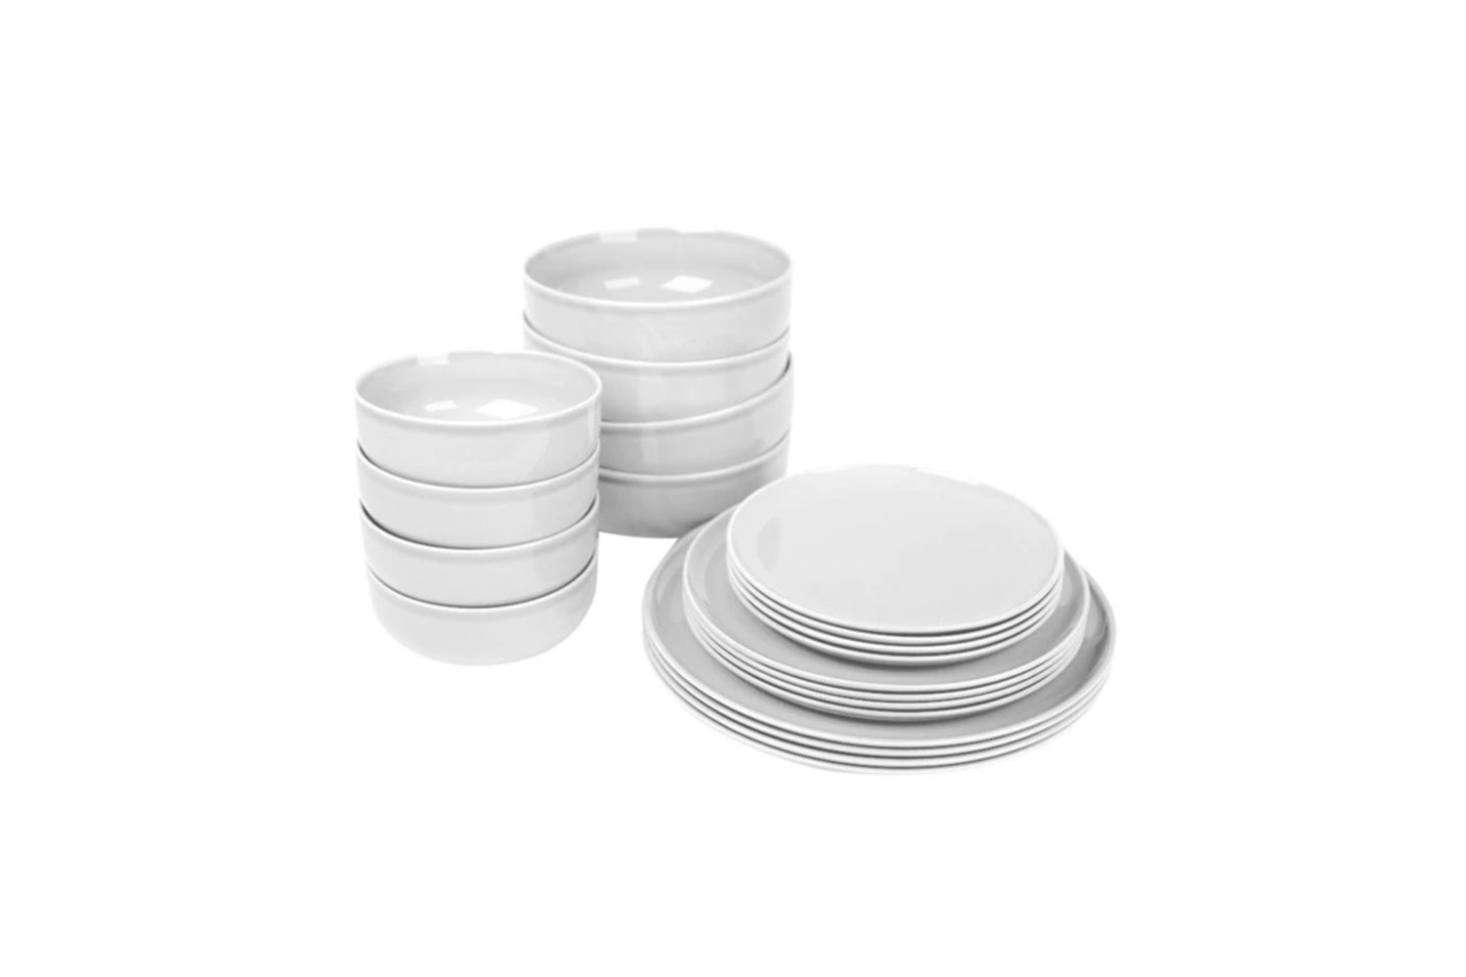 Architects Jonas Bjerre-Poulsen and Kasper Rønn of Danish studio Norm Architects designed the New Norm Dinnerware for Menu in Ocean, Smoke, Dark Glazed, and White (shown). The New Norm Dinnerware Starter Set with four of each dish is $603.90 at the Danish Design Store.